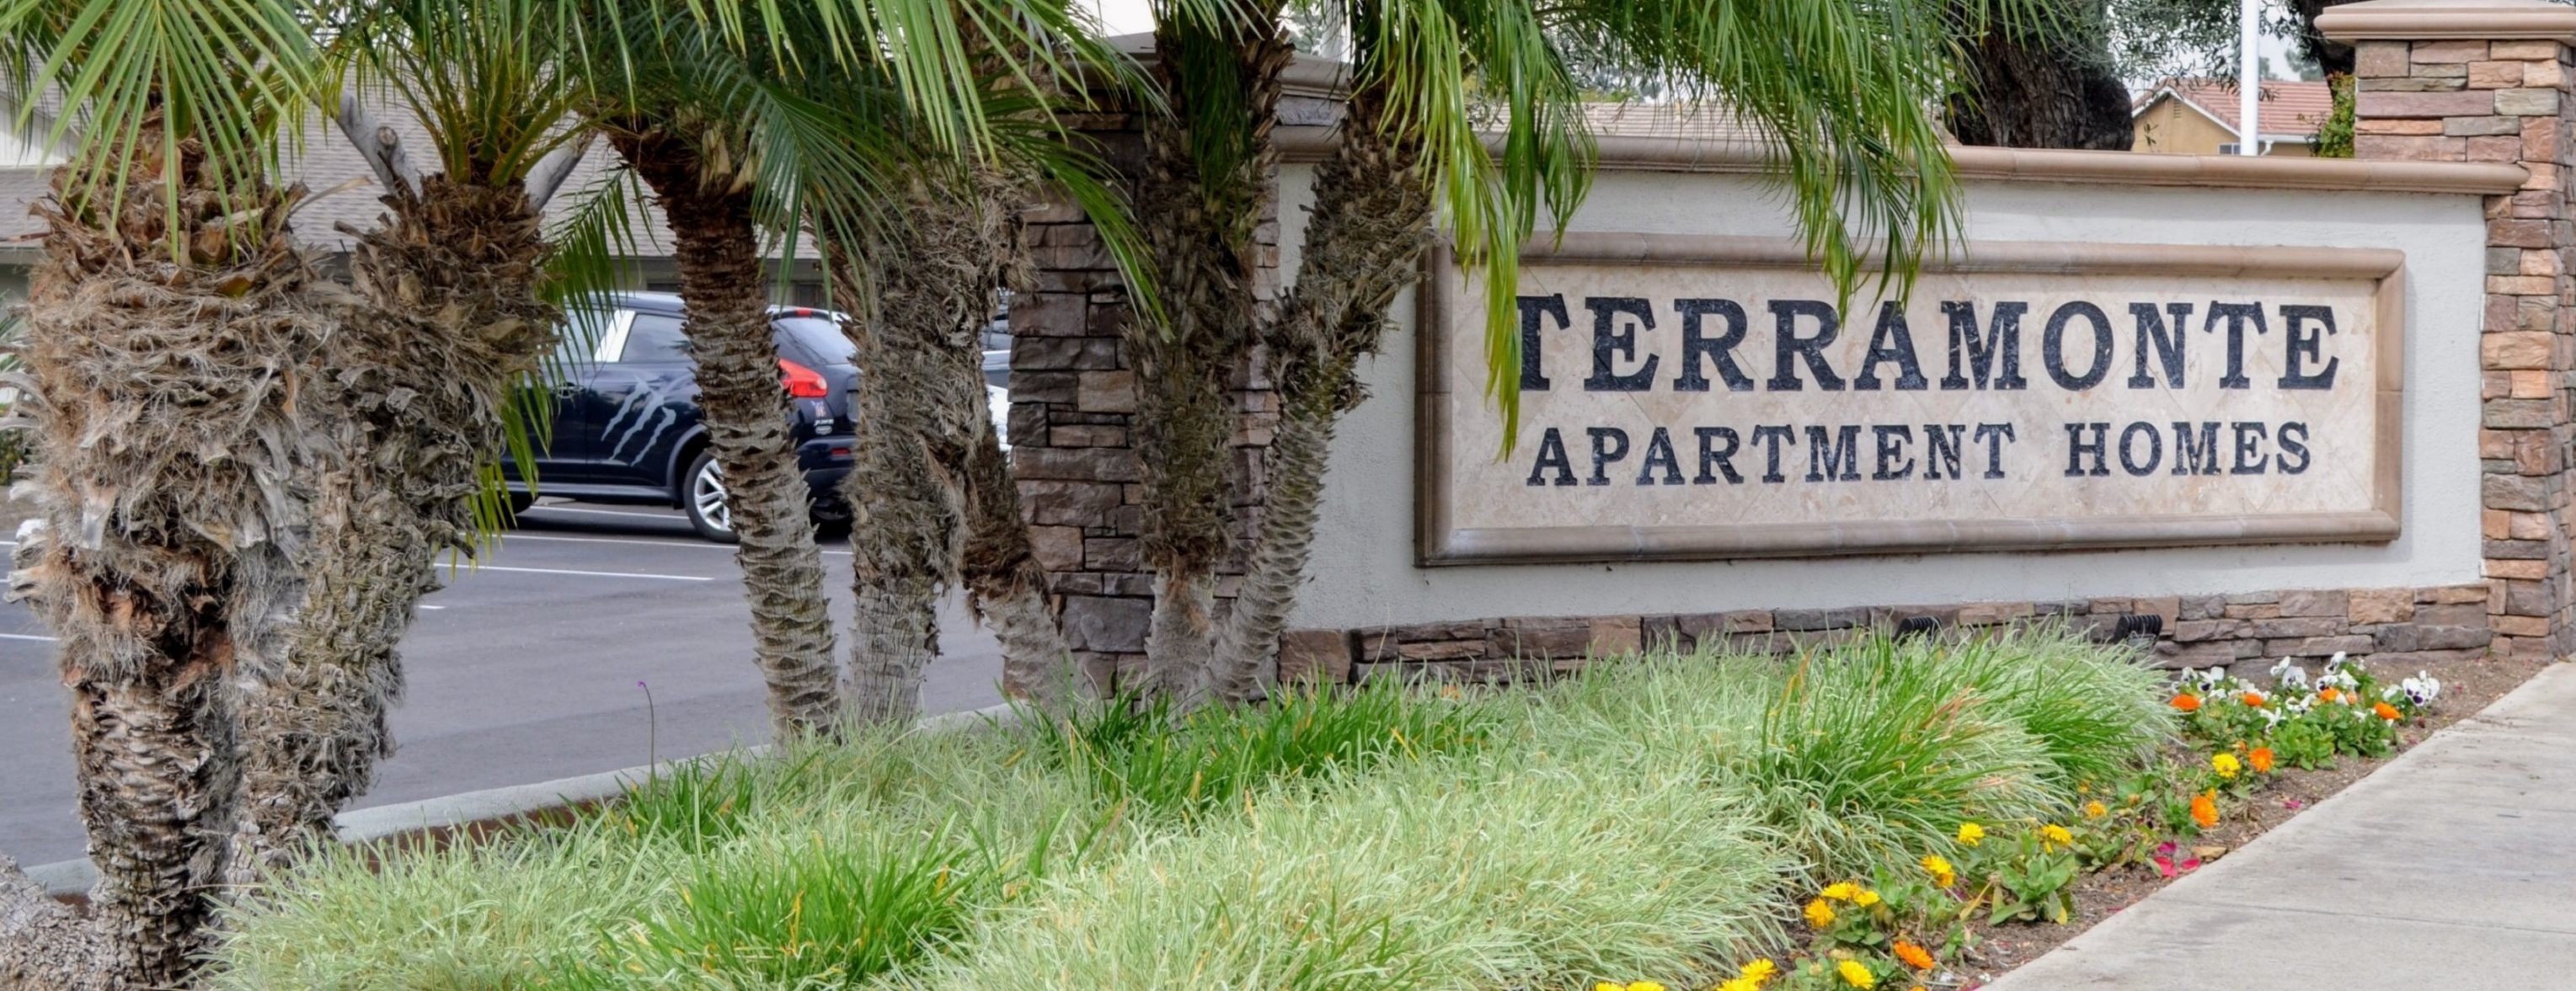 Grand Entrance at Terramonte Apartment Homes, Pomona, California